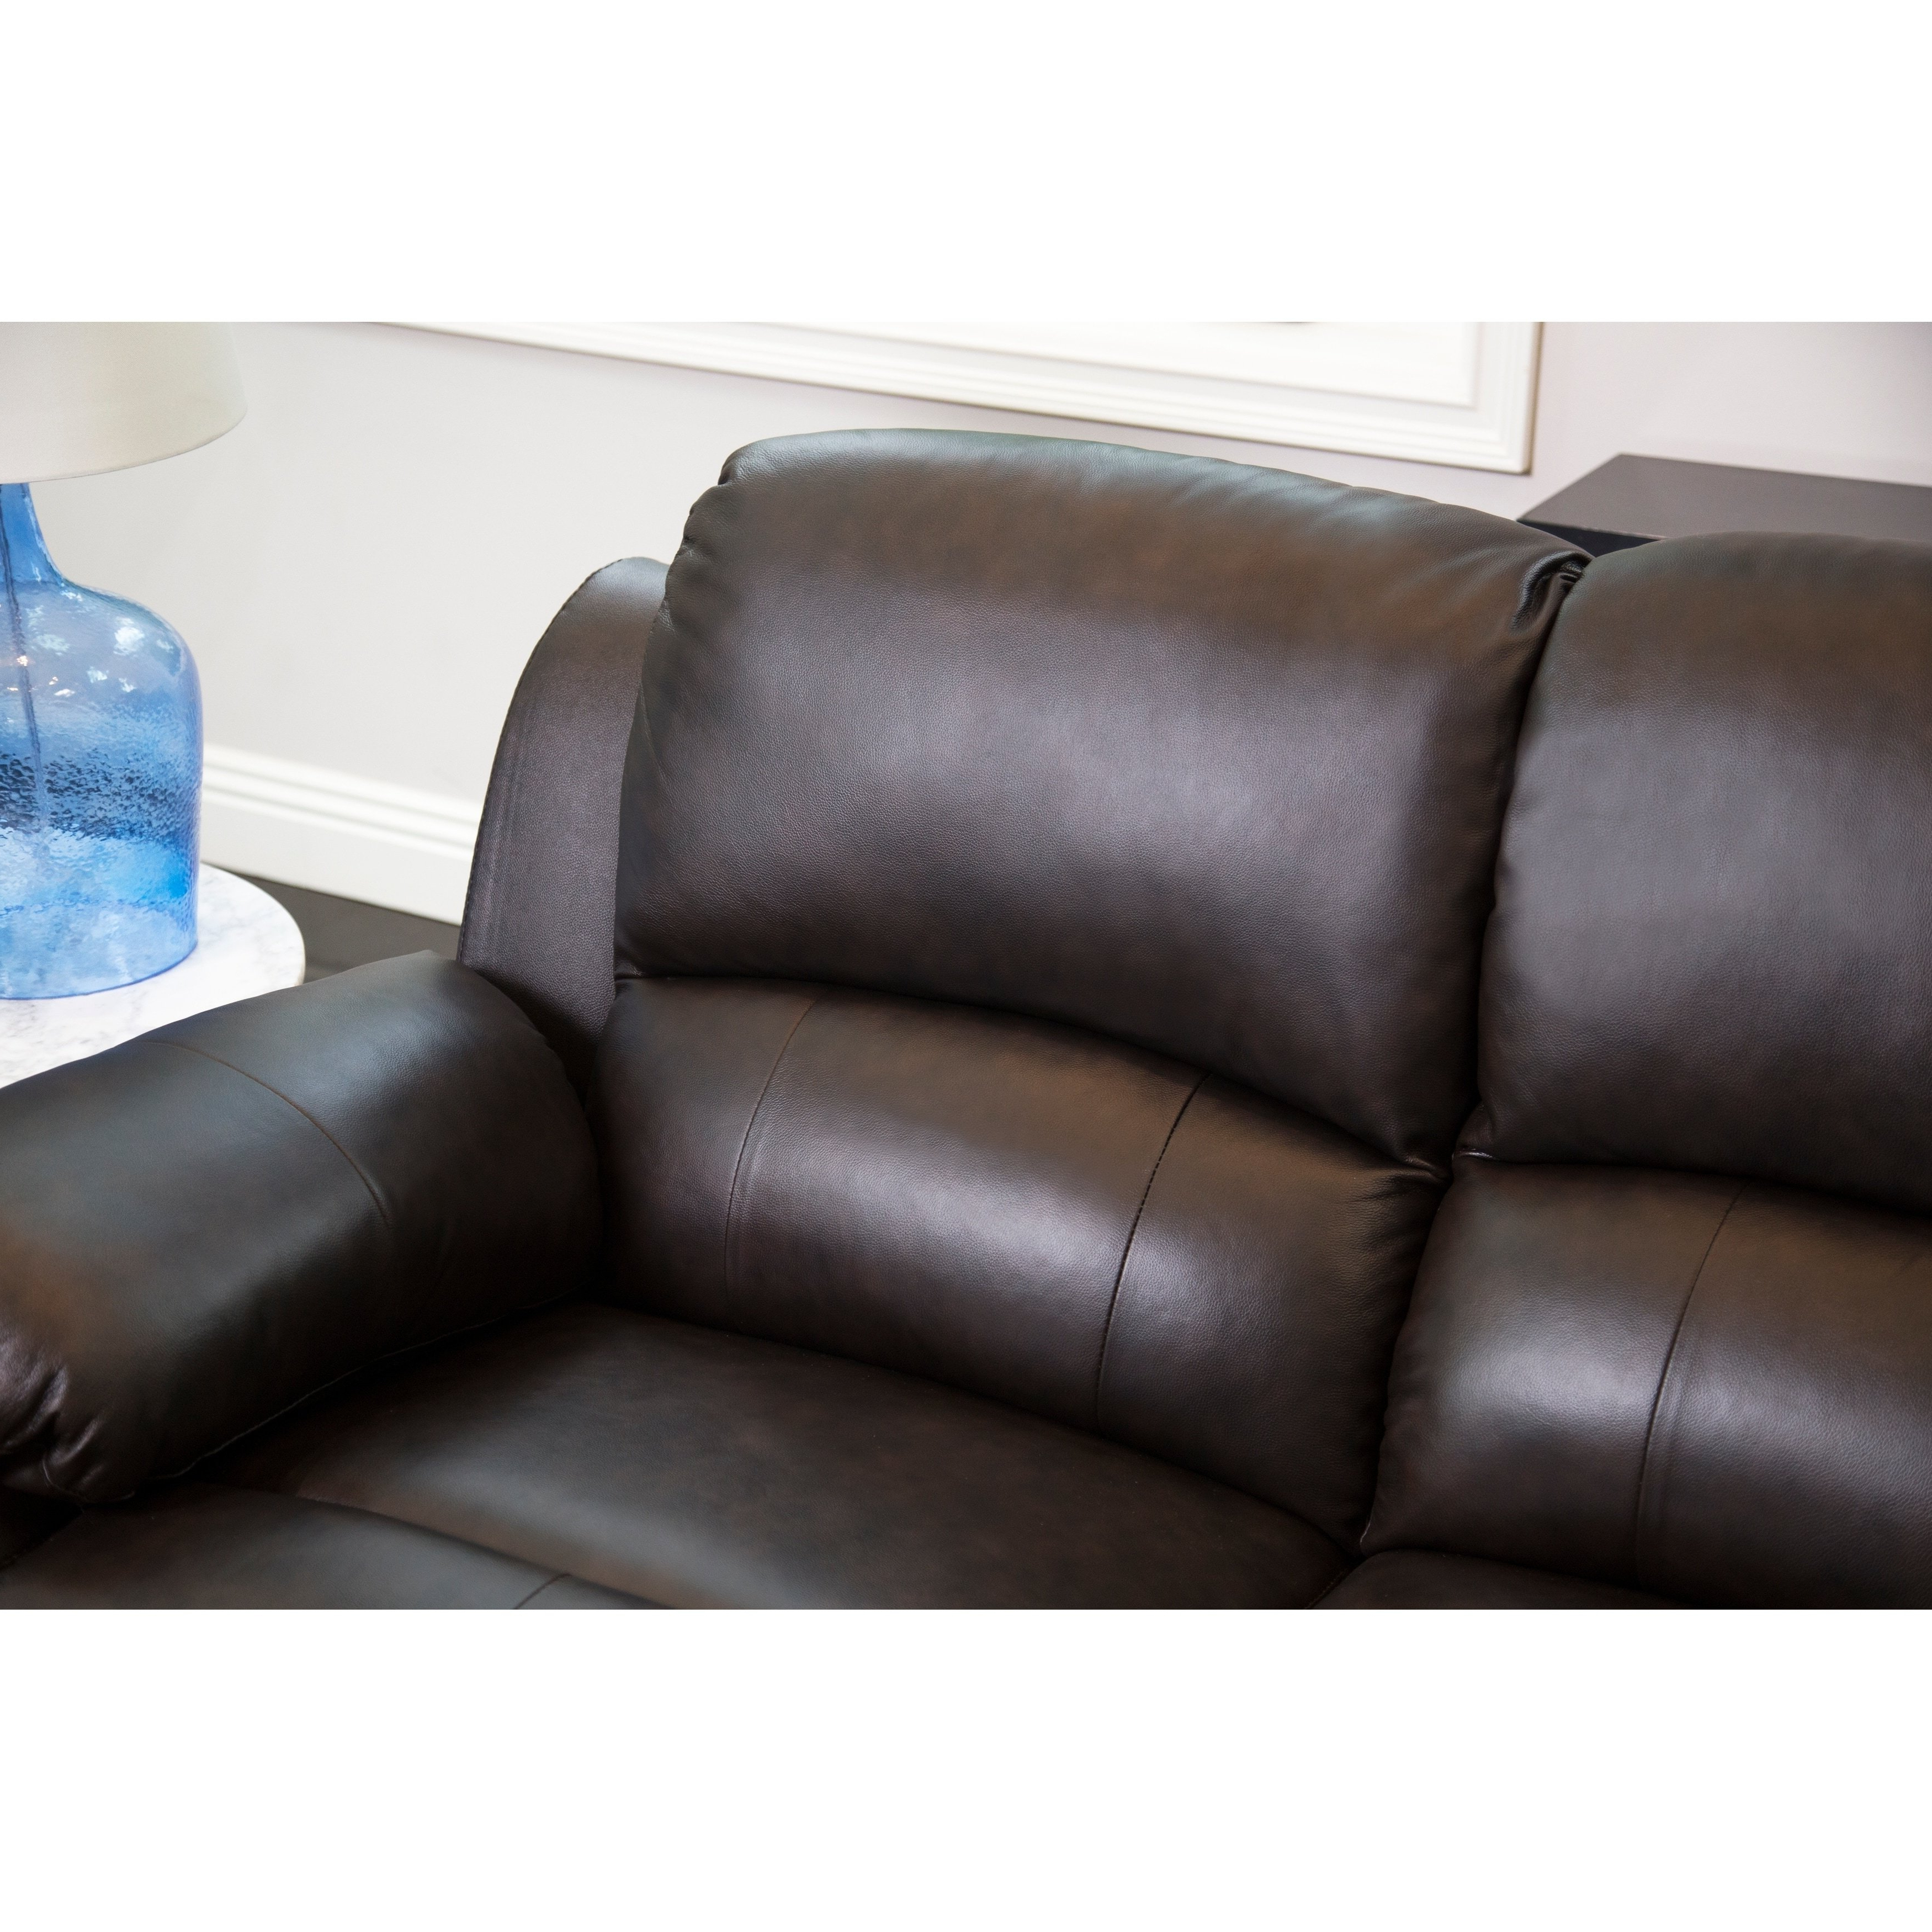 Burton Leather 3 Piece Sectionals With Recent Vast 25 Genuine Leather Reclining Sectional Ideal (View 9 of 20)